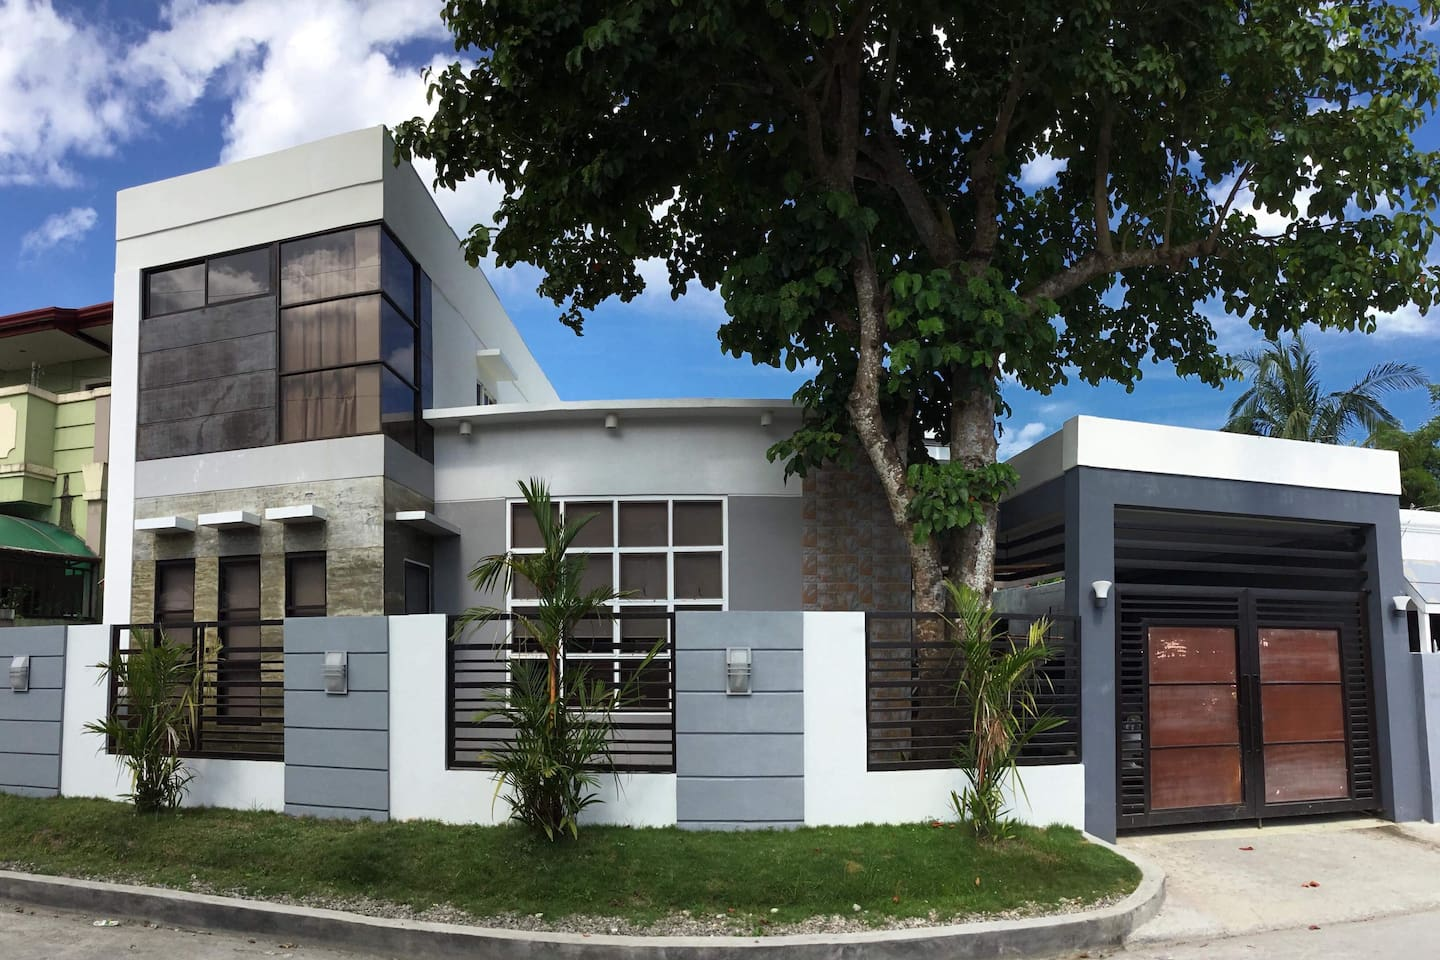 V AND GS' GUESTHOUSE 9 Bedrooms and 7 Bathrooms.  Room 6 with own bathroom for Rent  DZR Airport - 15 mins drive  Robinson's Mall - 7 mins drive  Puregold Store - 5 mins walk Catholic Church - 5 mins walk RTR Hospital - 10 mins walk RTR/DVOREF School - 10 mins walk